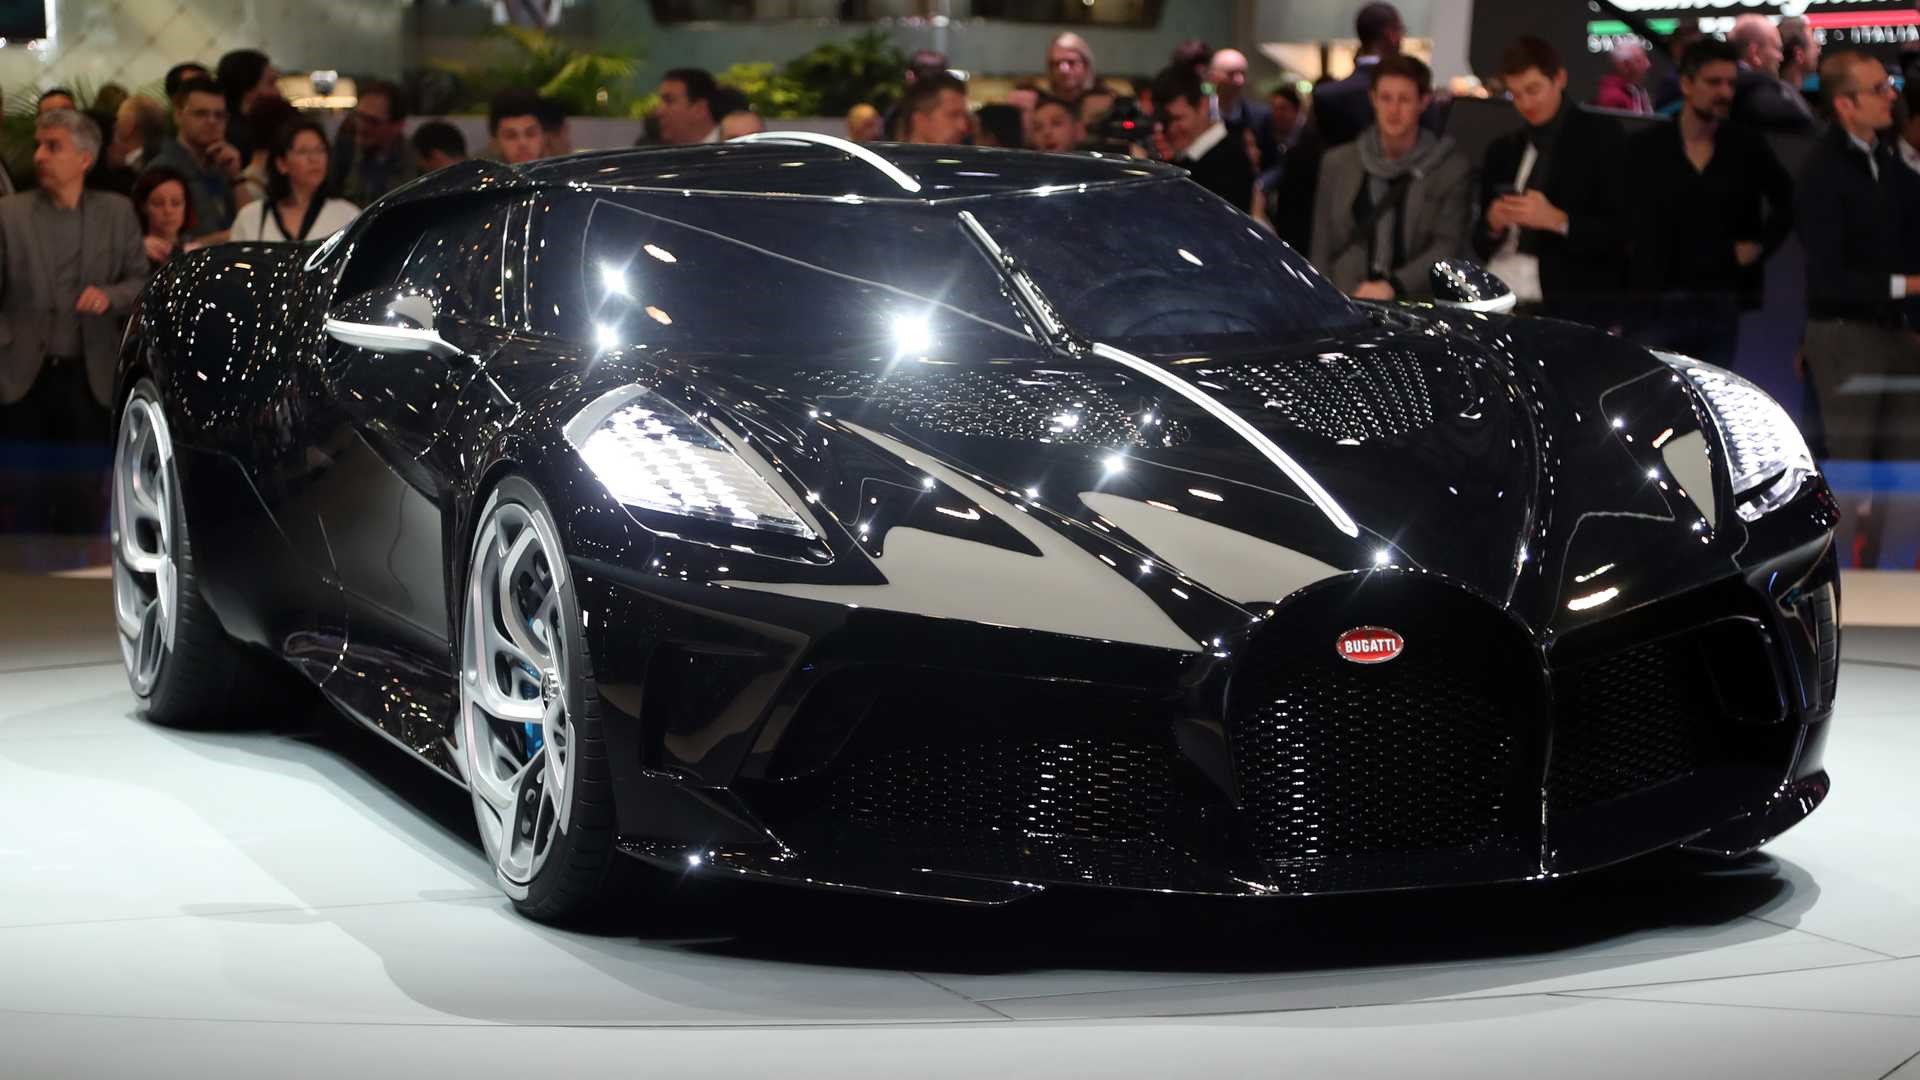 Just One Bugatti La Voiture Noire Exists And It S Priced: Interesting Car Trivia You Should Know